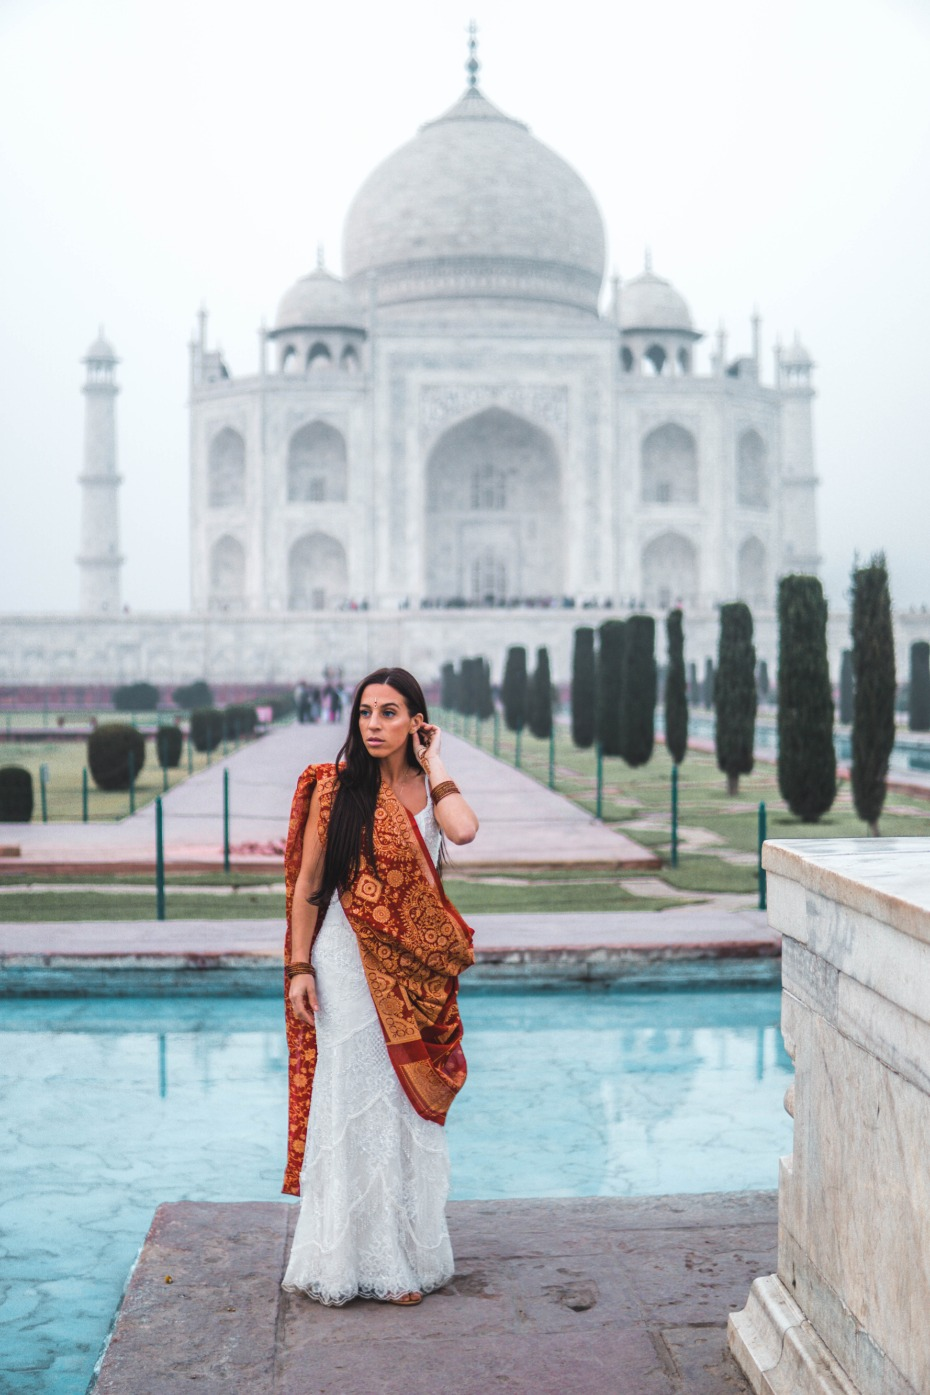 Zoe in Watters gown in India